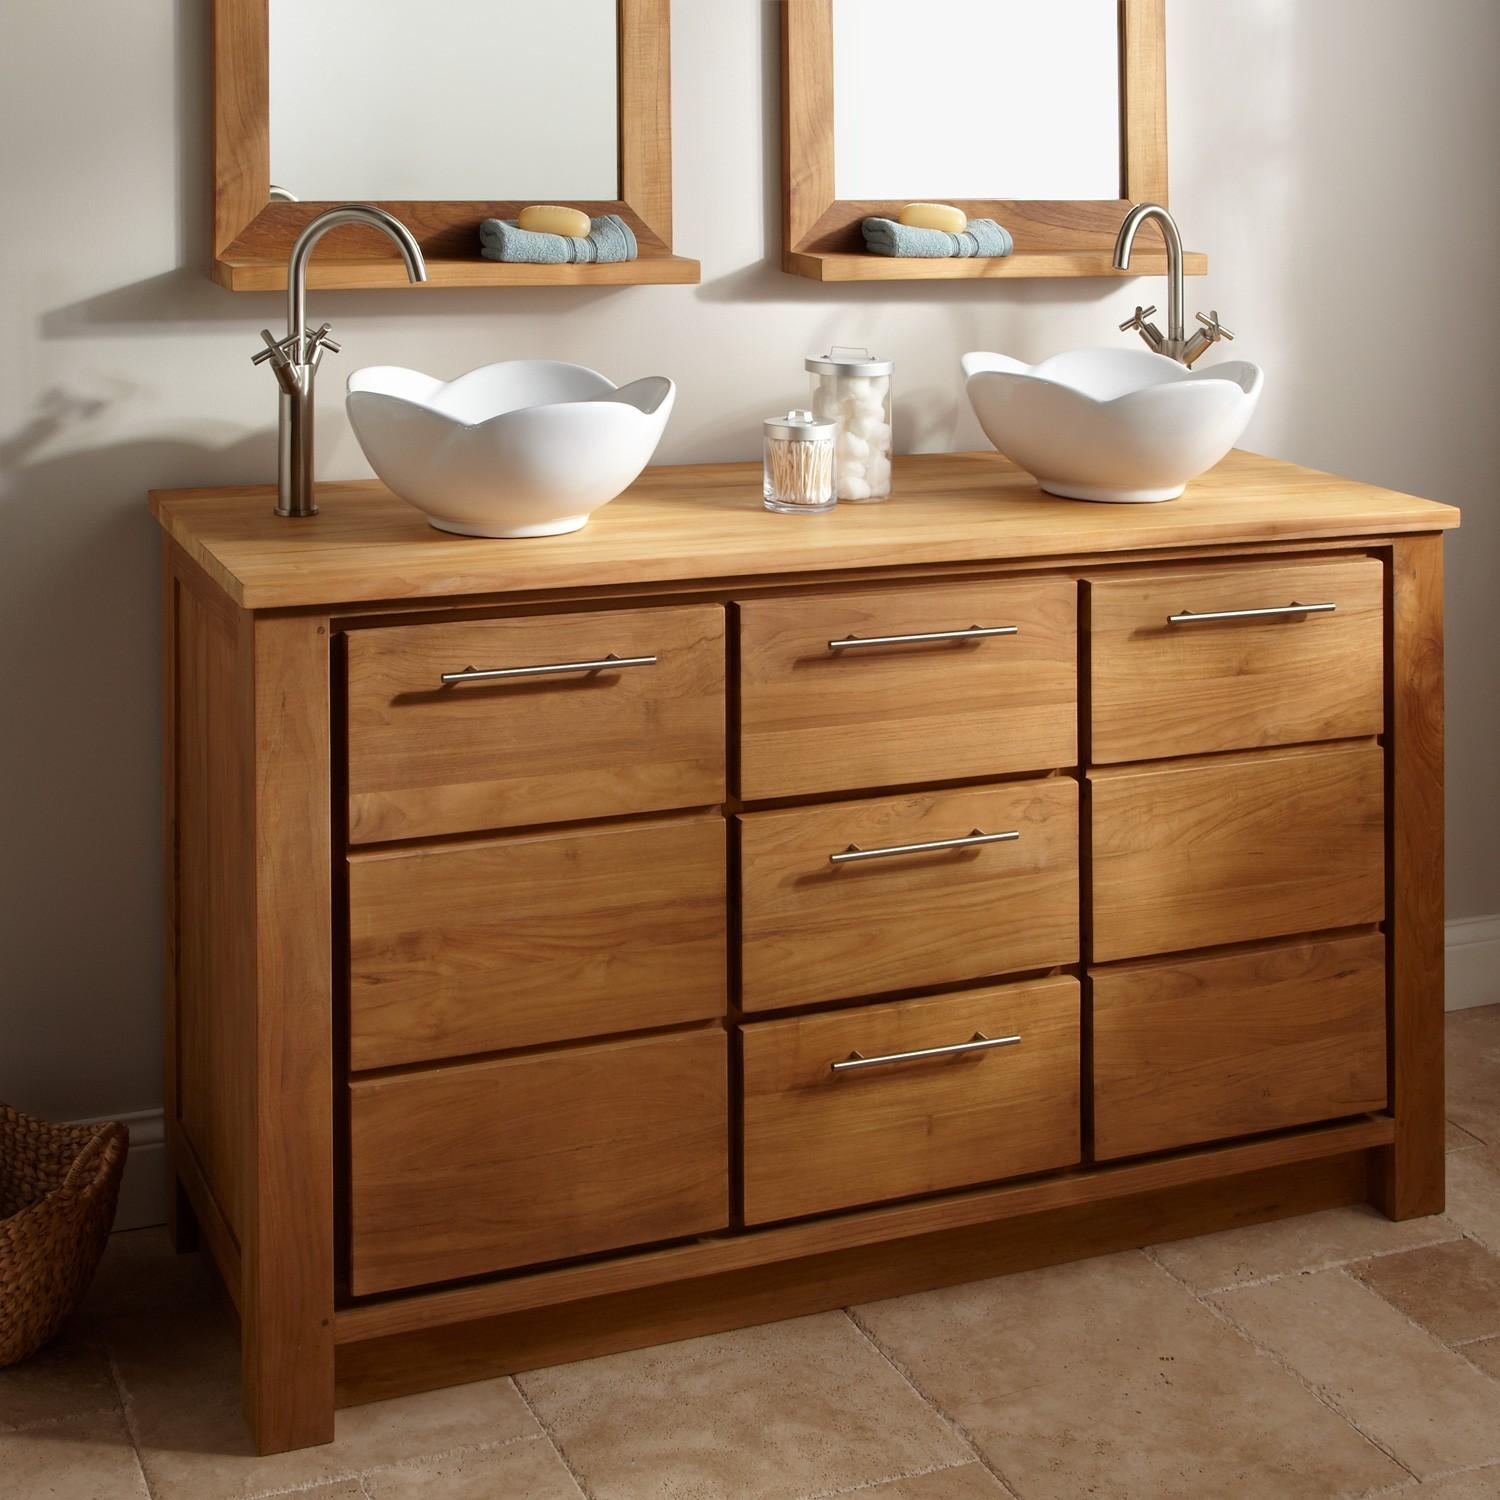 Natural Hickory Wood Vanity Cabinet Double White